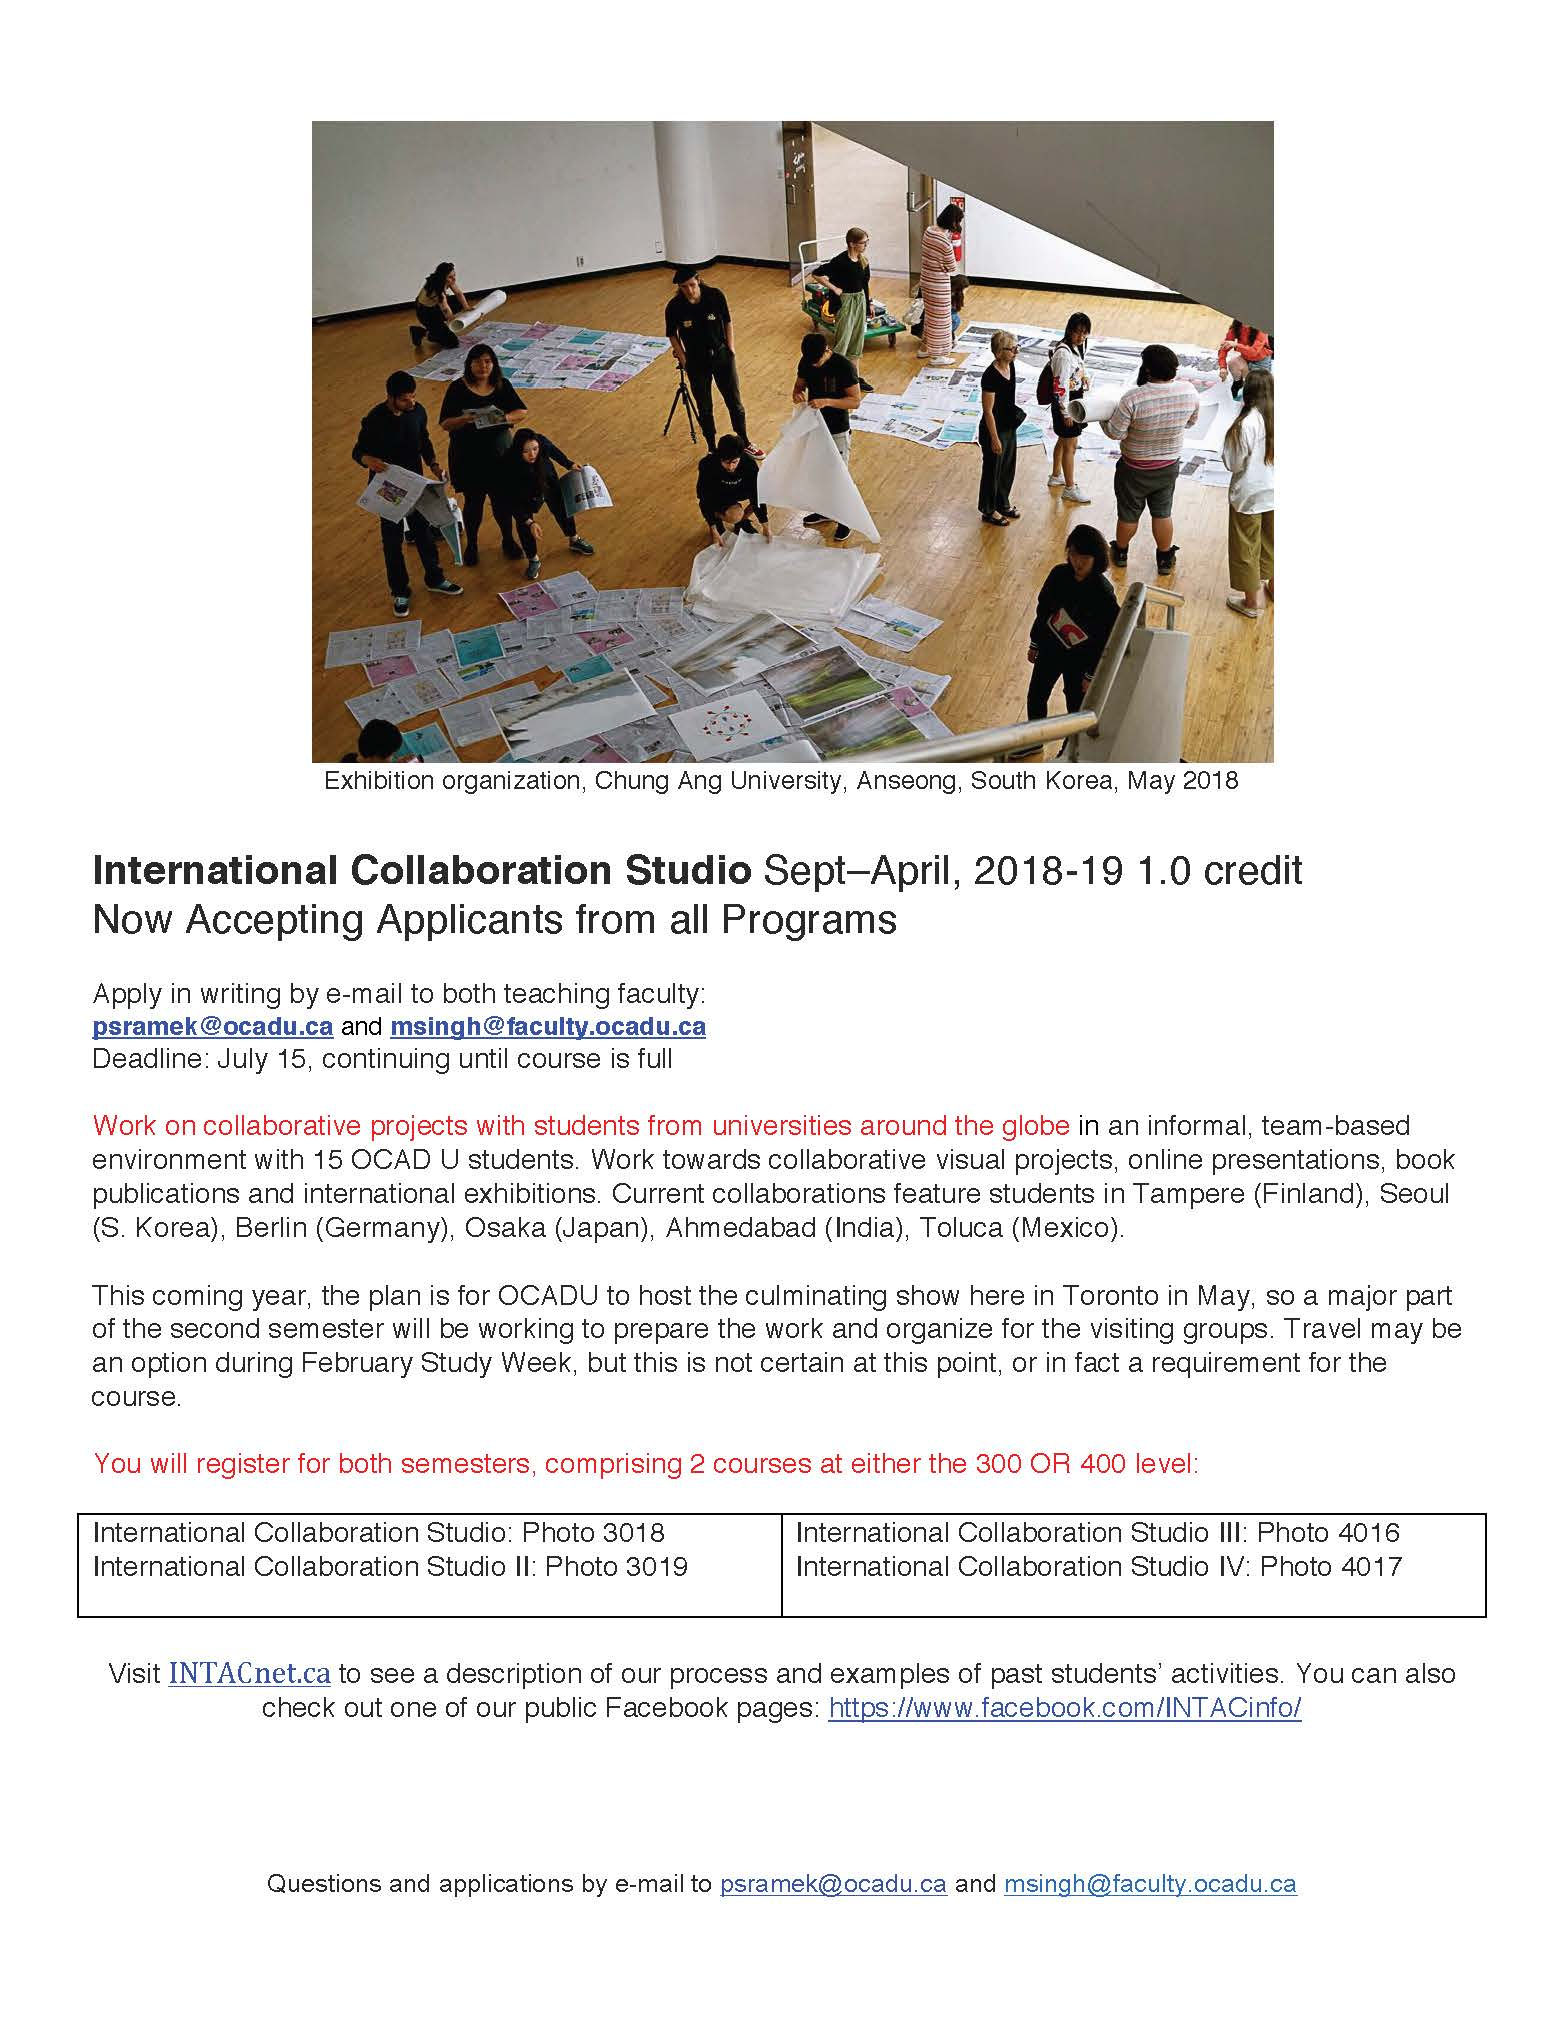 intac-call-for-applicants-2018-19_page_1